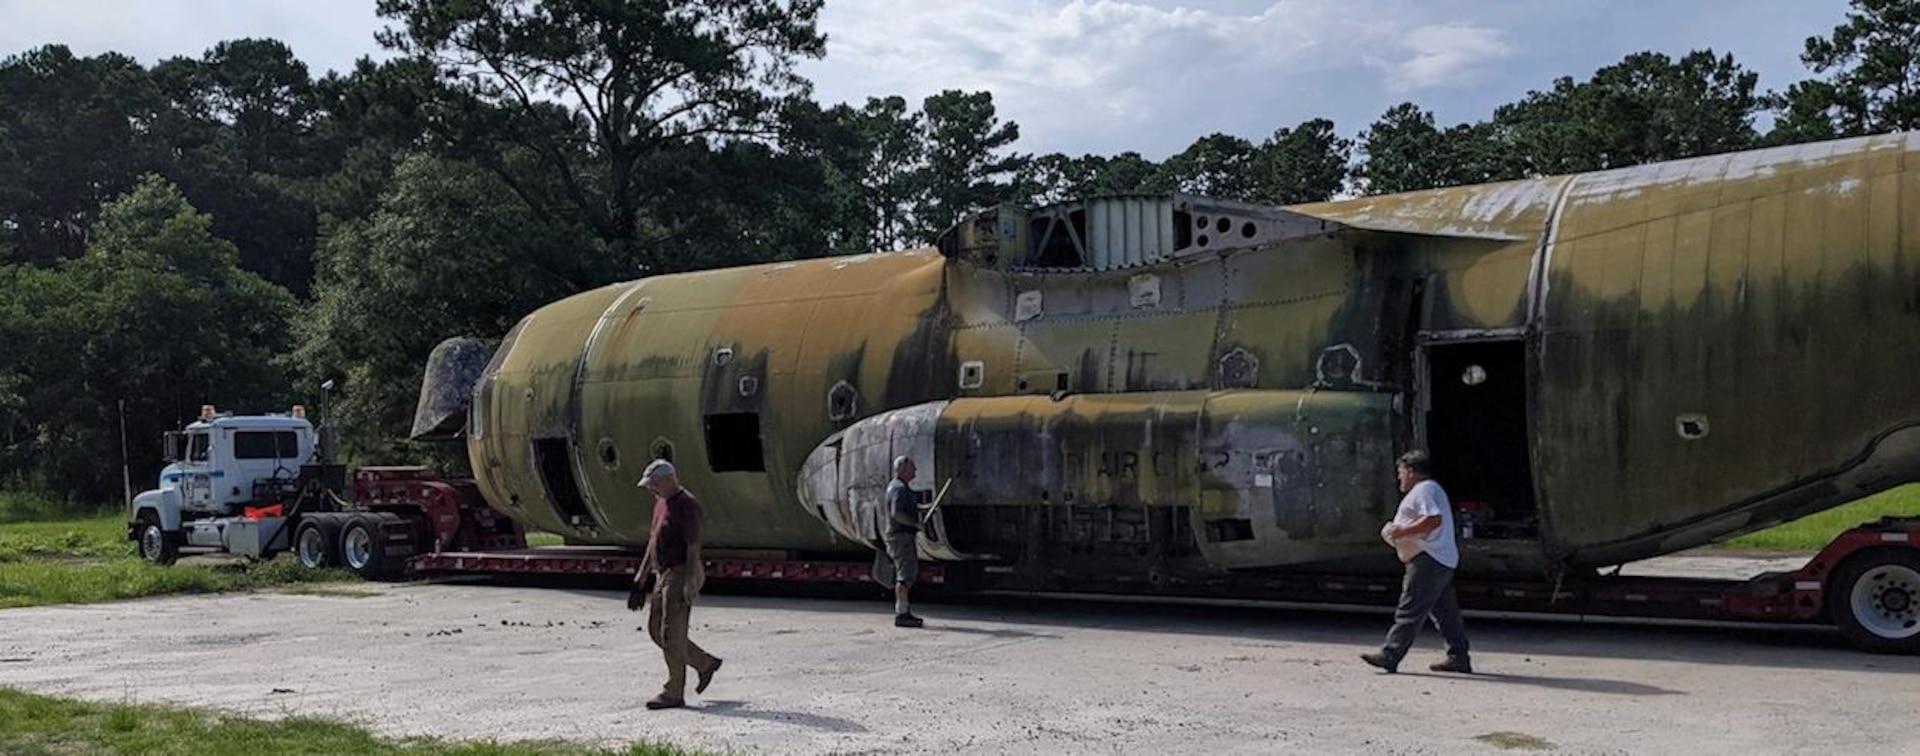 Individuals walk next to fuselage of a disable C-130